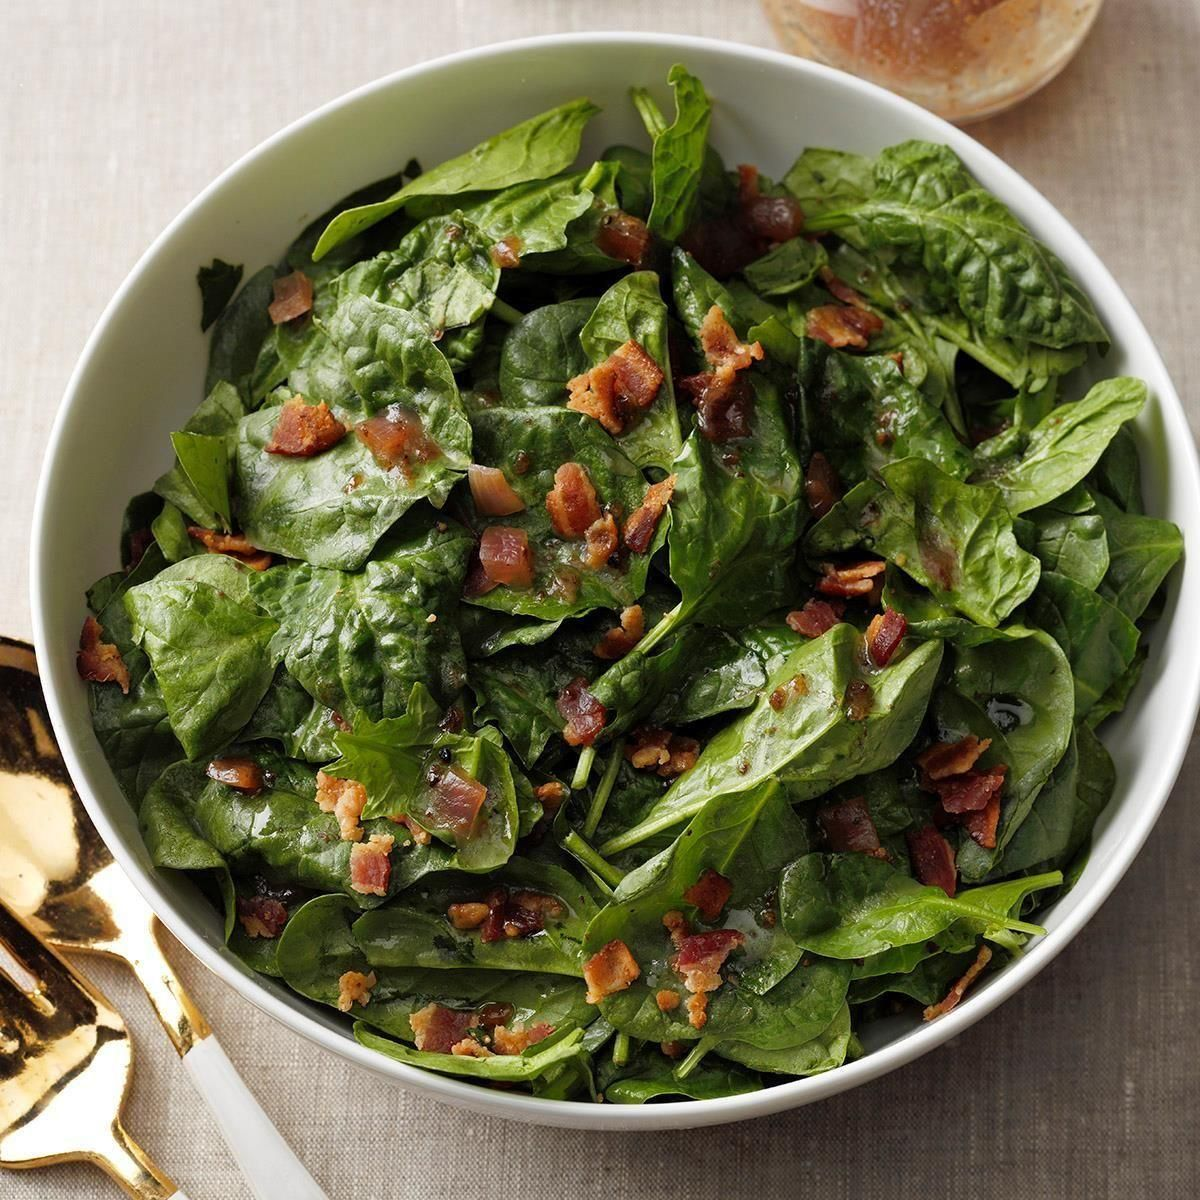 Spinach Salad with Hot Bacon Dressing  - Fall recipes -Hearty Spinach Salad with Hot Bacon Dressing